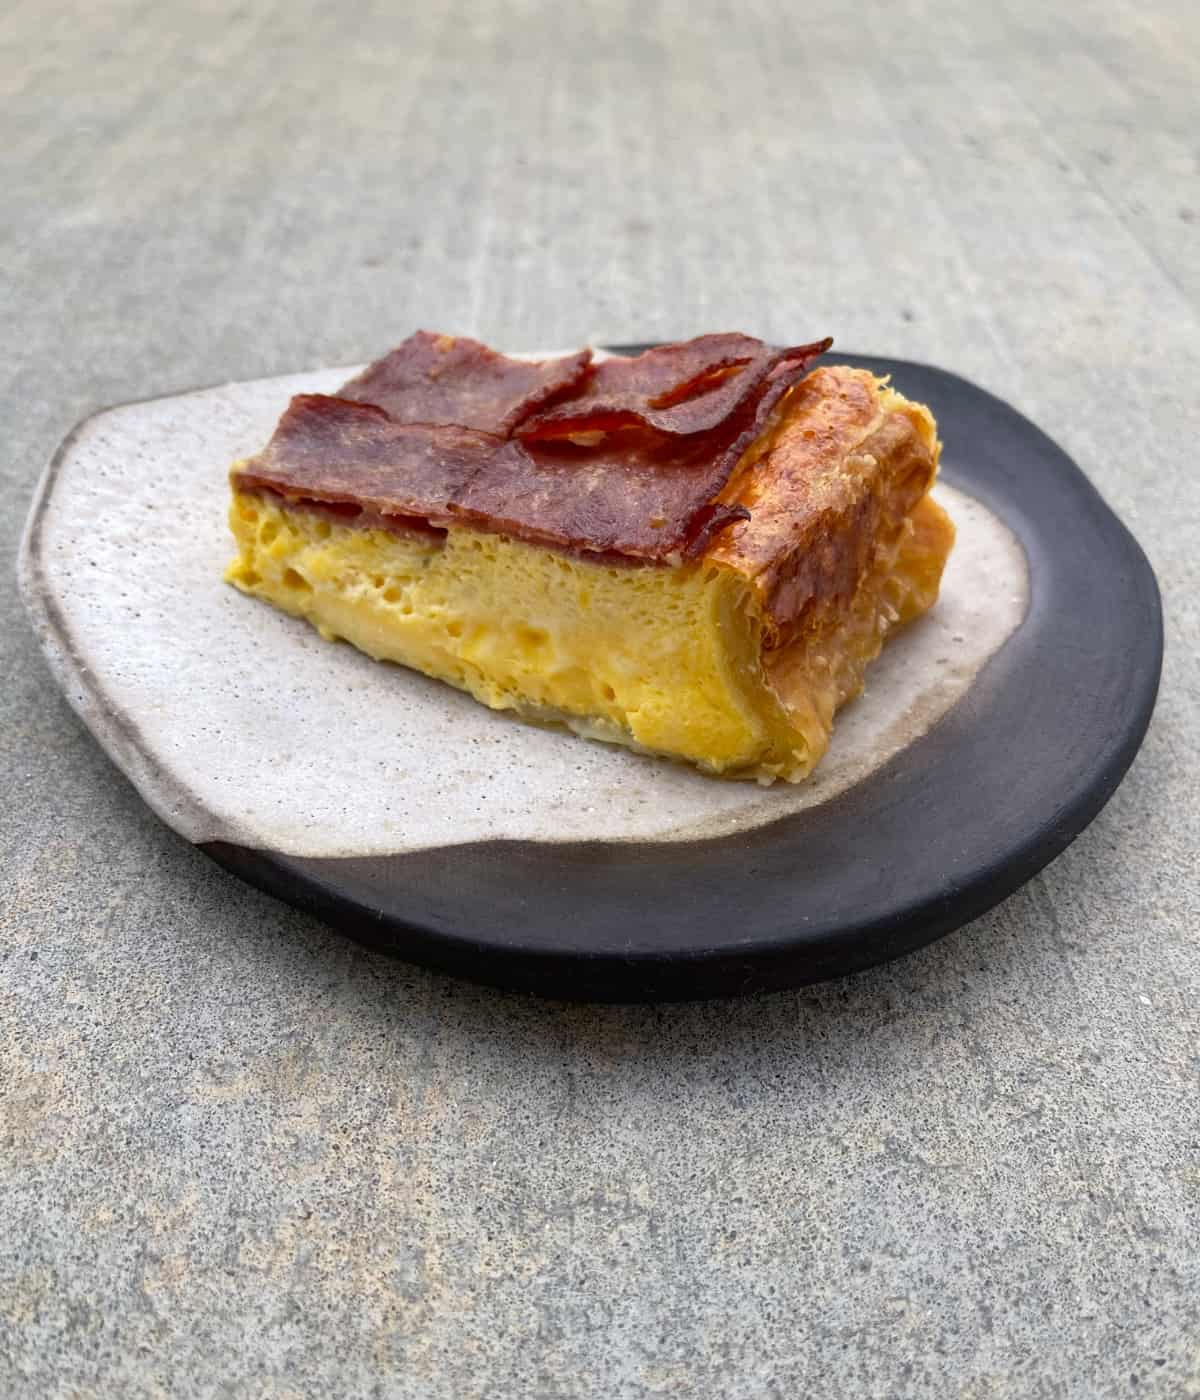 Piece of bacon, egg and cheese breakfast pie on ceramic plate.